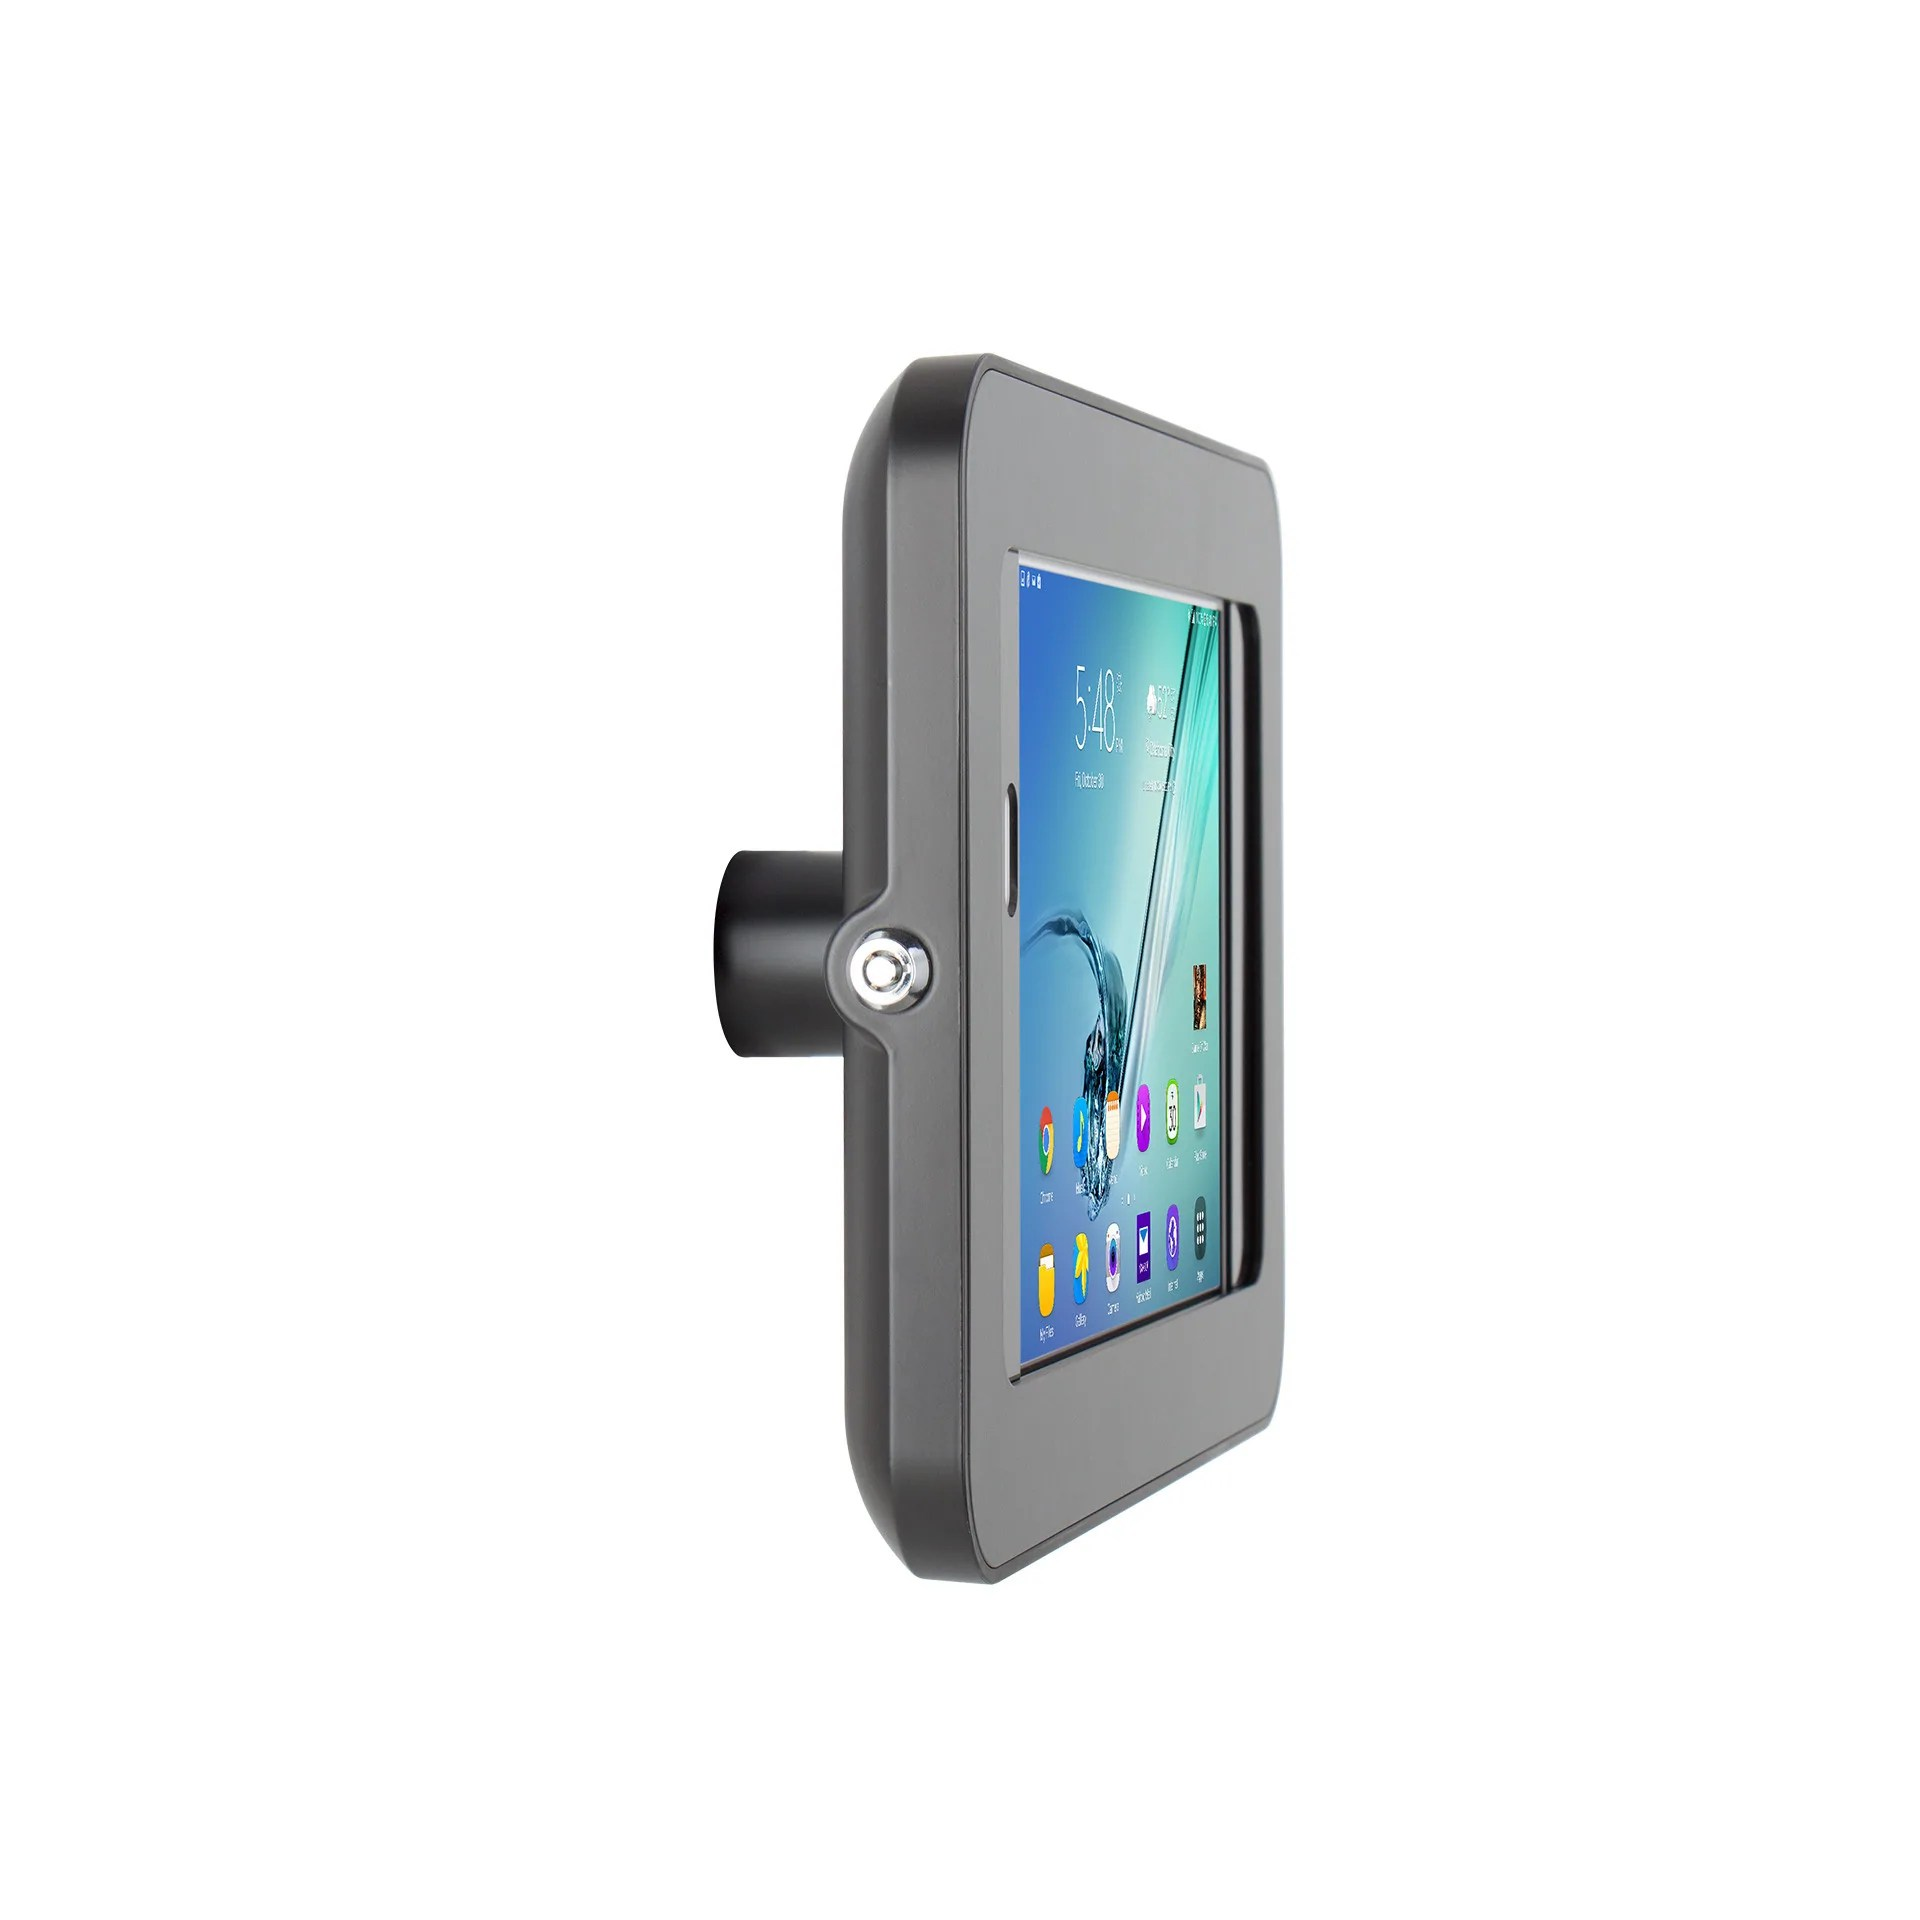 Galaxy Tab 9.7 Elevate Ii On Wall Mount Kiosk For Galaxy Tab S3 S2 9 7 Black